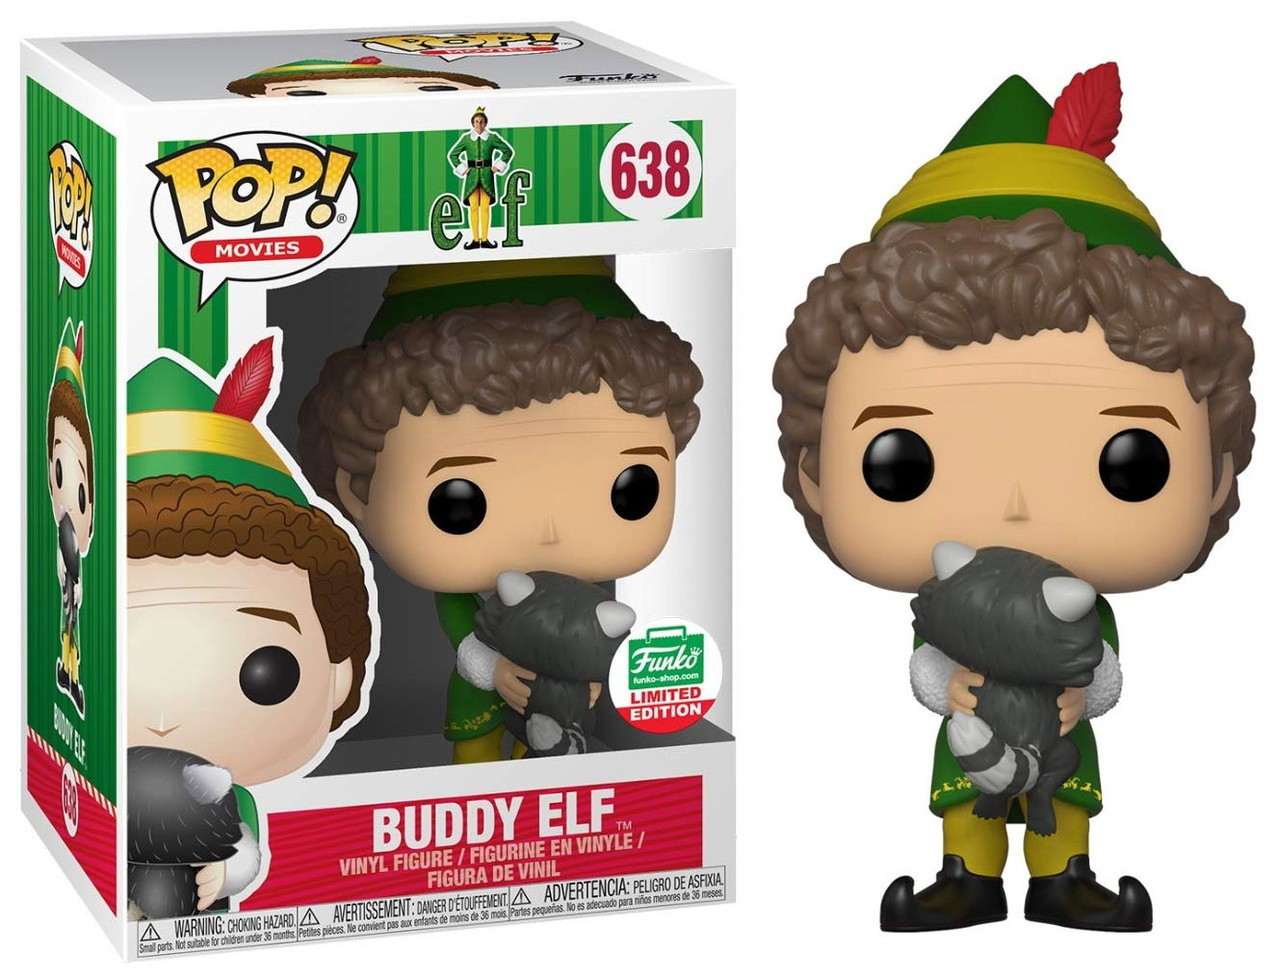 Funkos Buddy Elf 12 Days Of Christmas Exclusive! Movies: Elf Funko POP #638 2018 With Raccoon